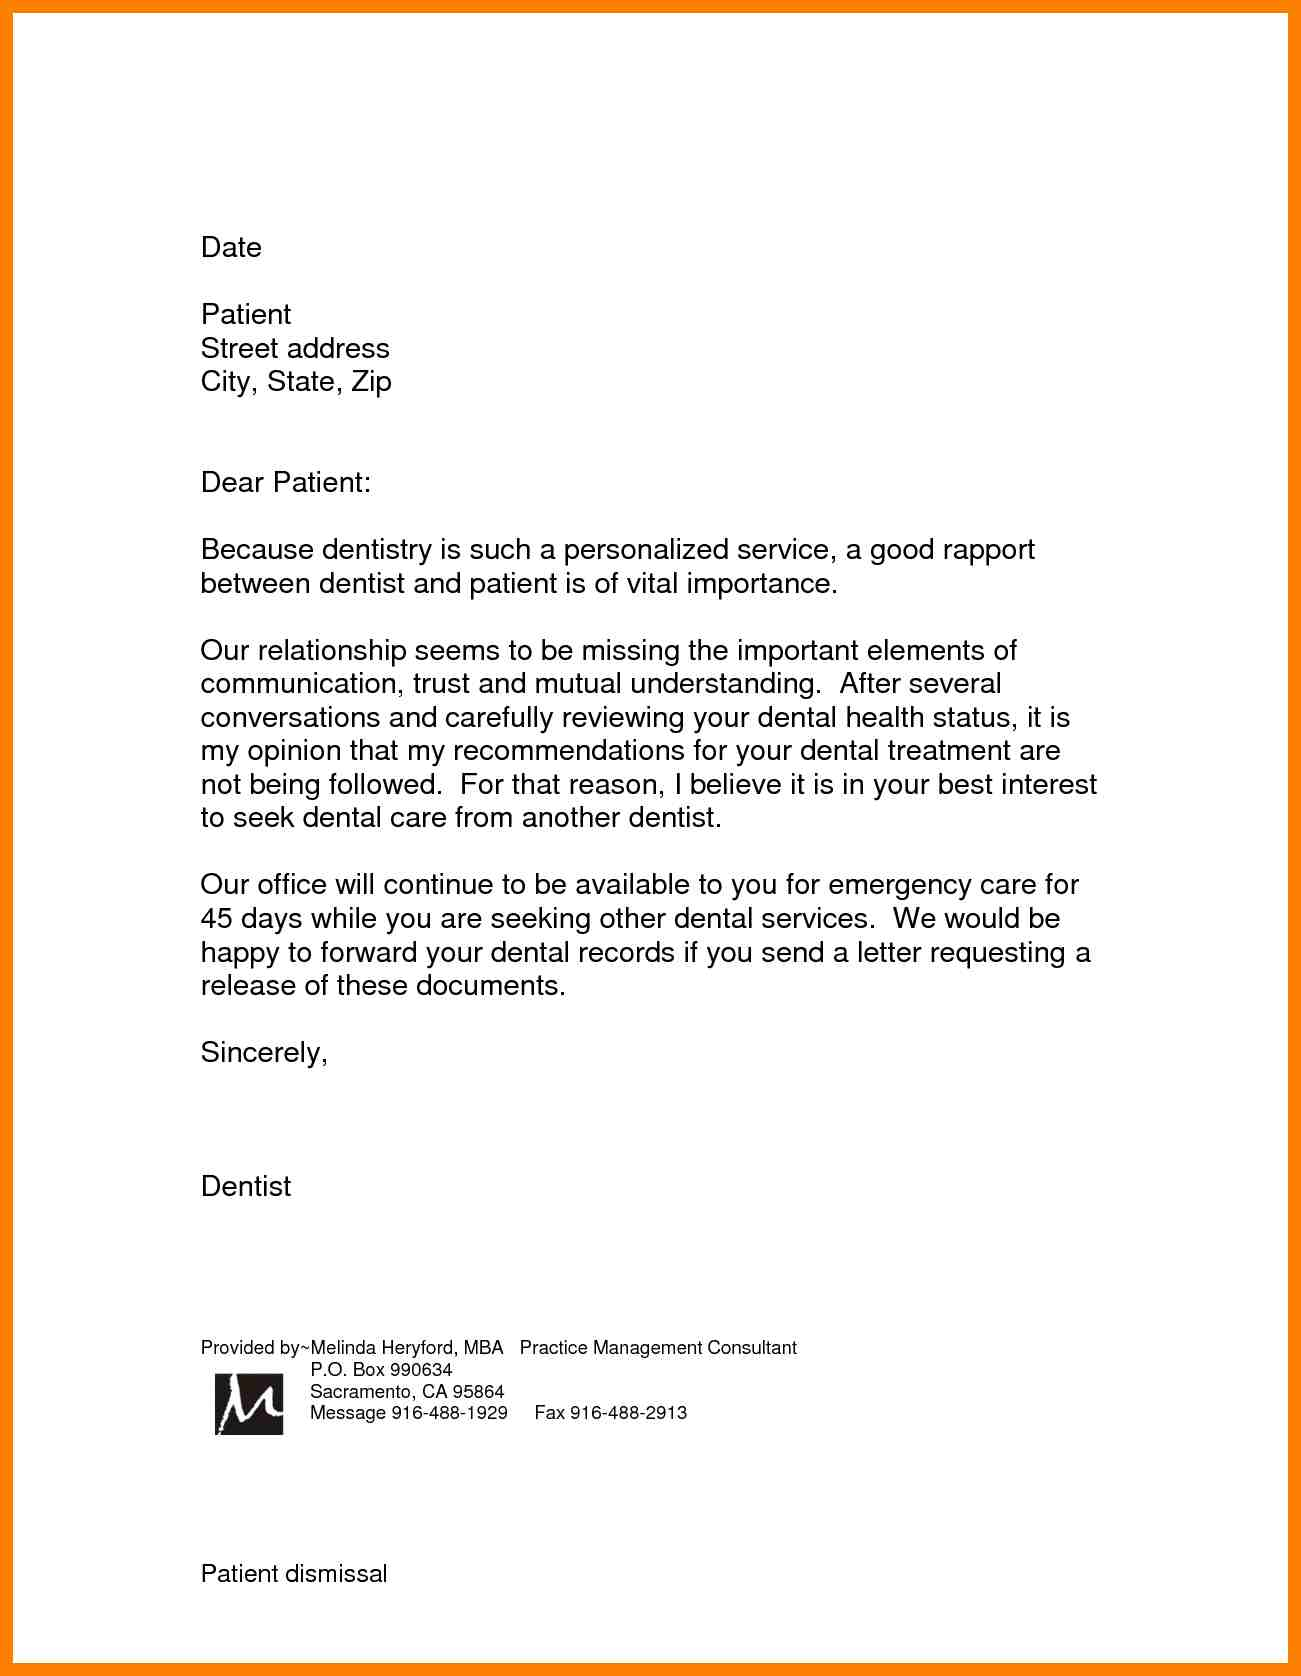 Dental Patient Dismissal Letter Template Samples | Letter Template